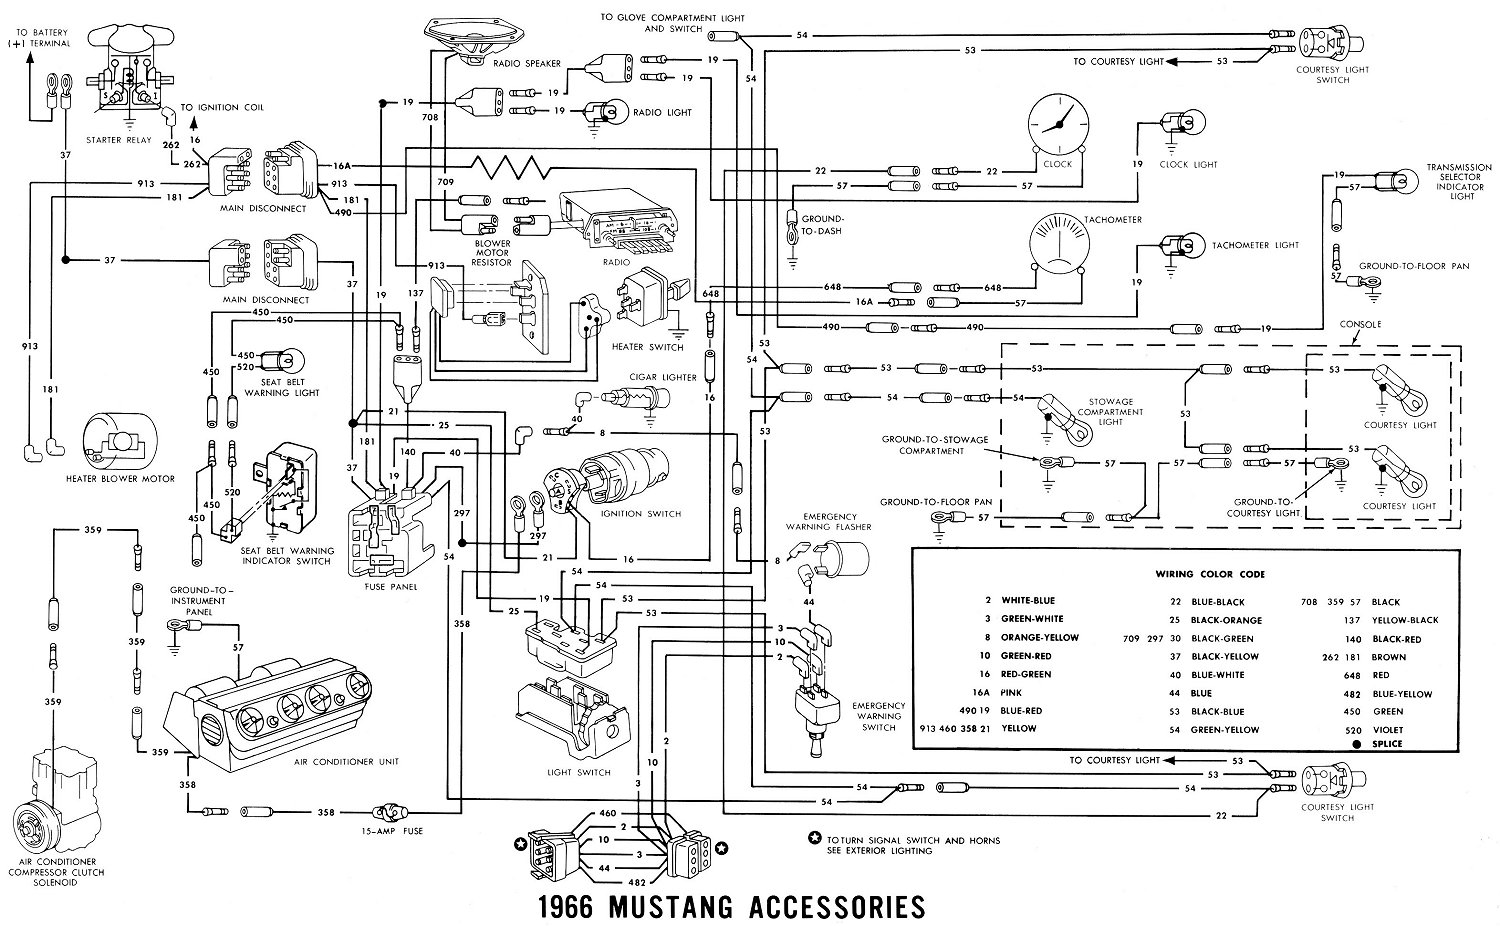 66acces1 66 mustang wiring diagram online 65 ford mustang wiring diagram 1965 ford mustang wiring diagrams at mifinder.co